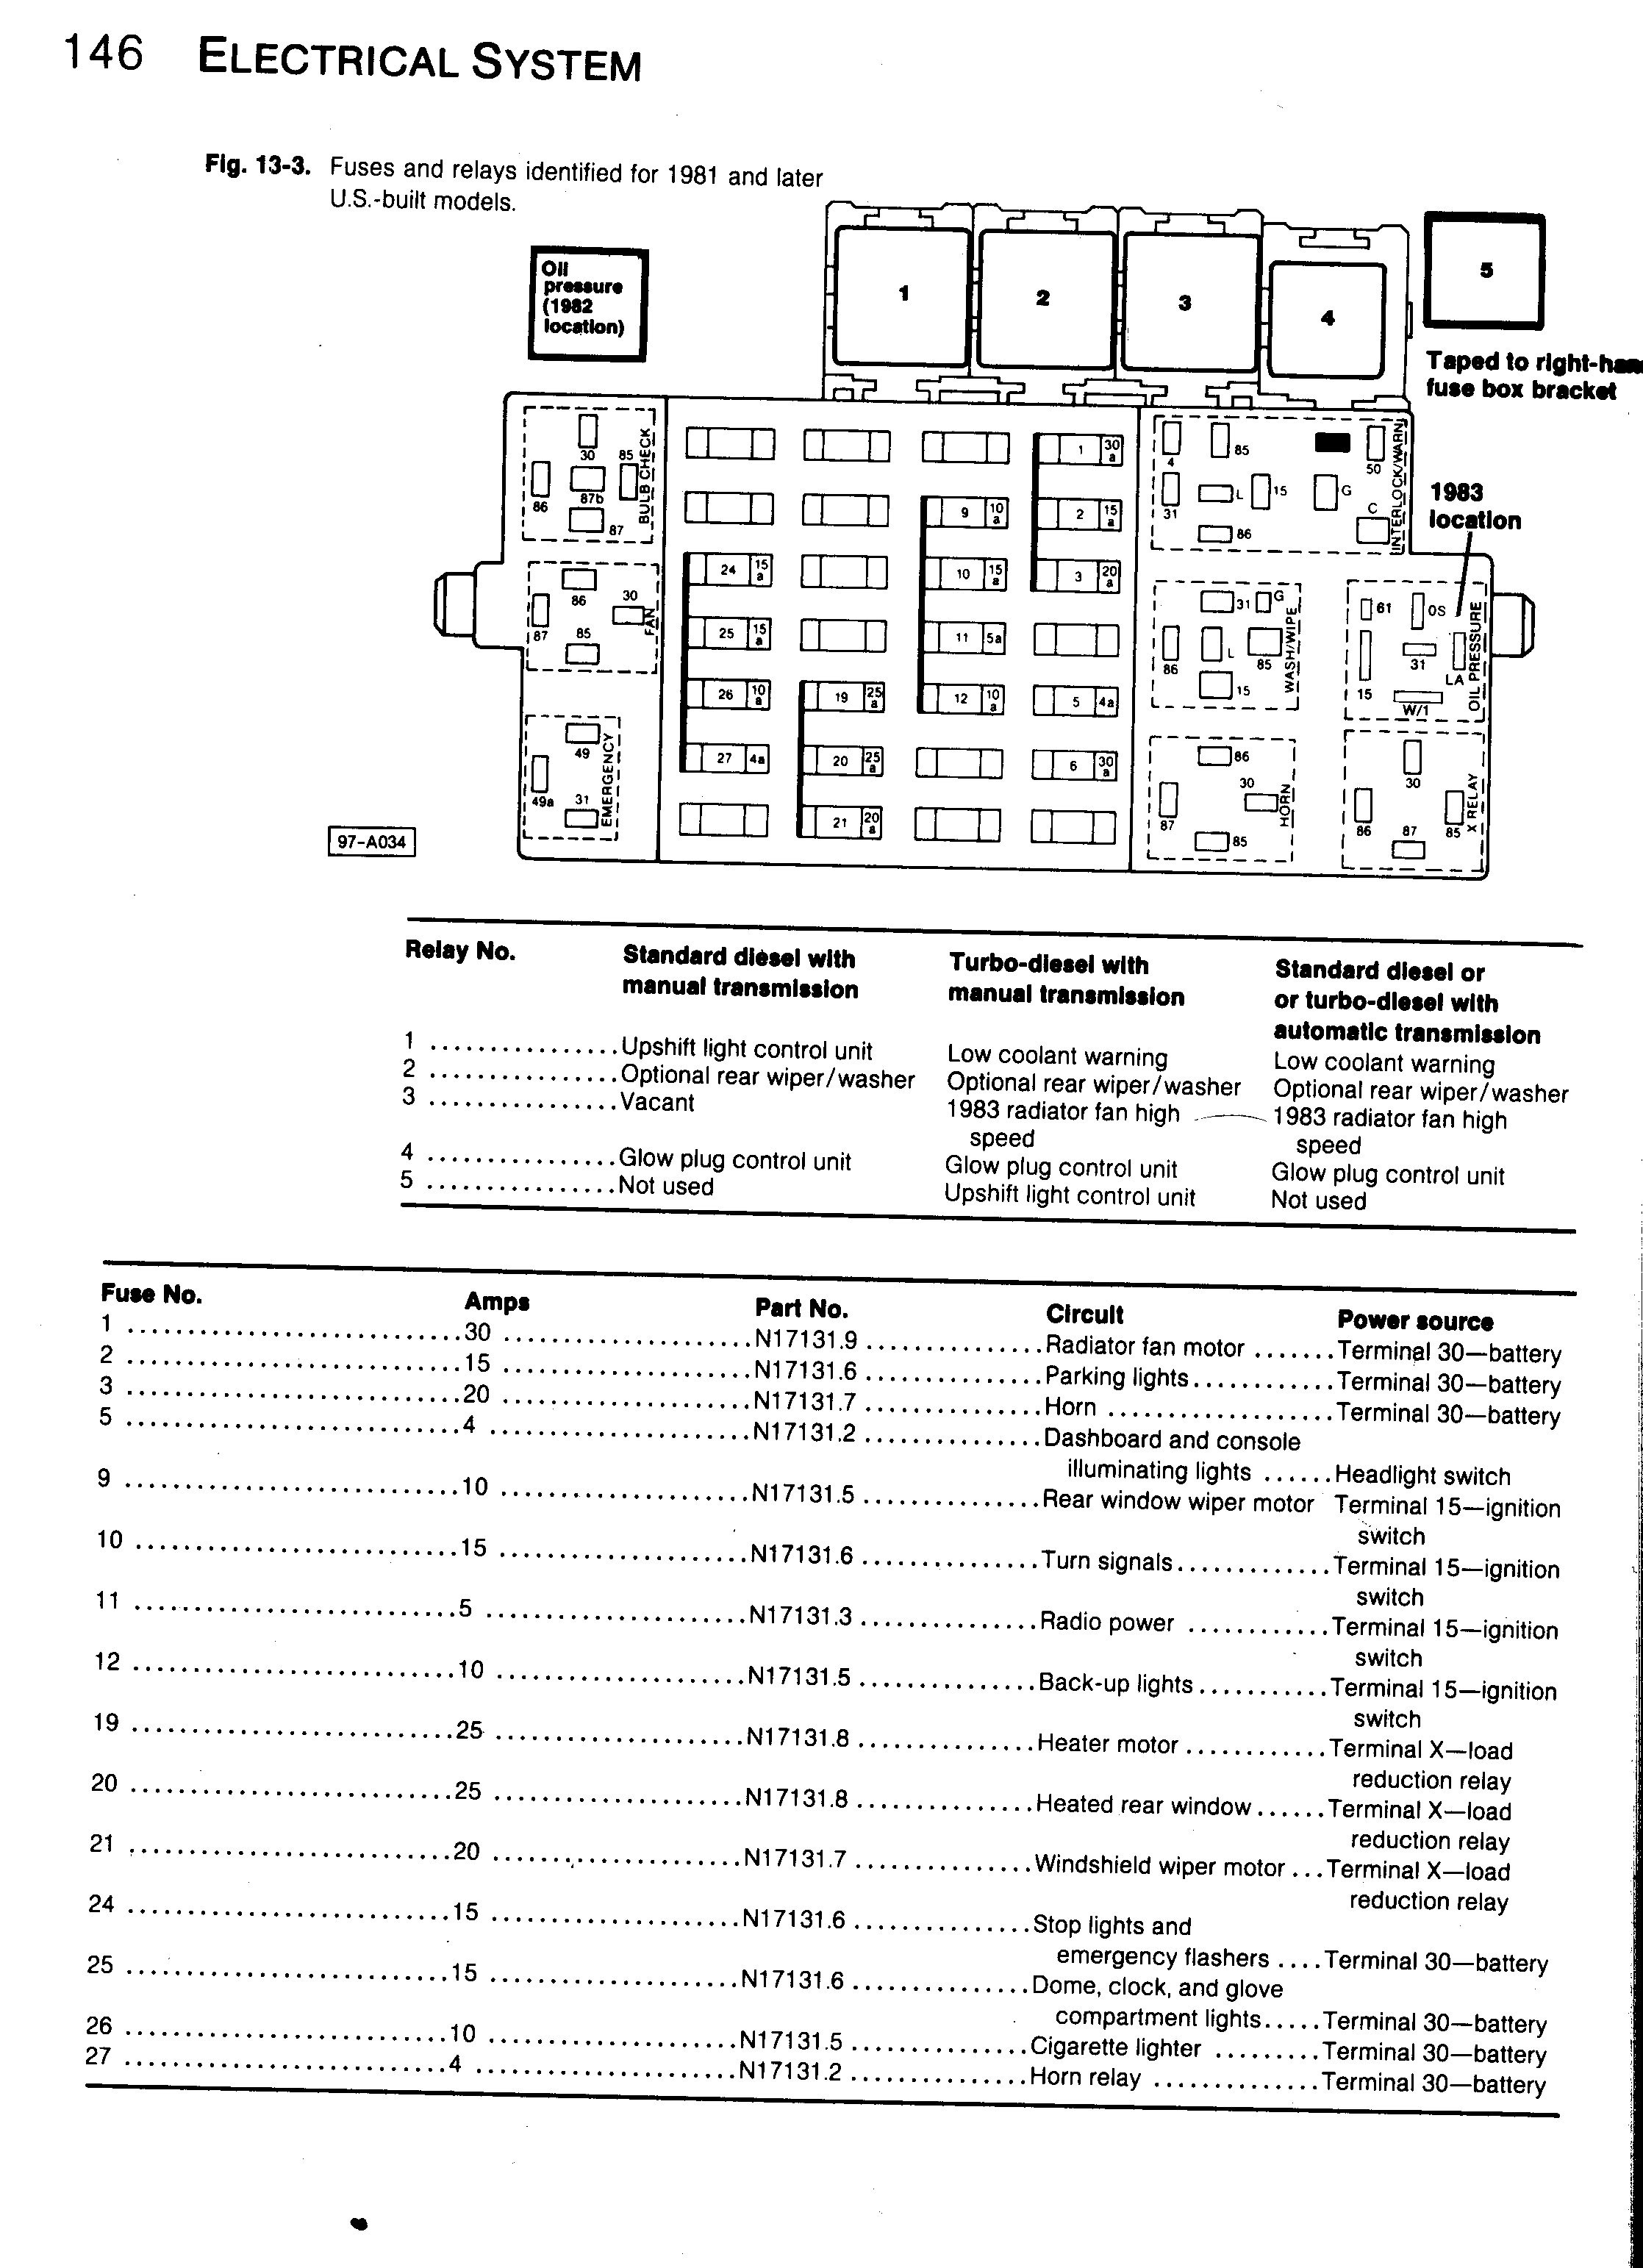 Fuse Box Diagram For Ford F450